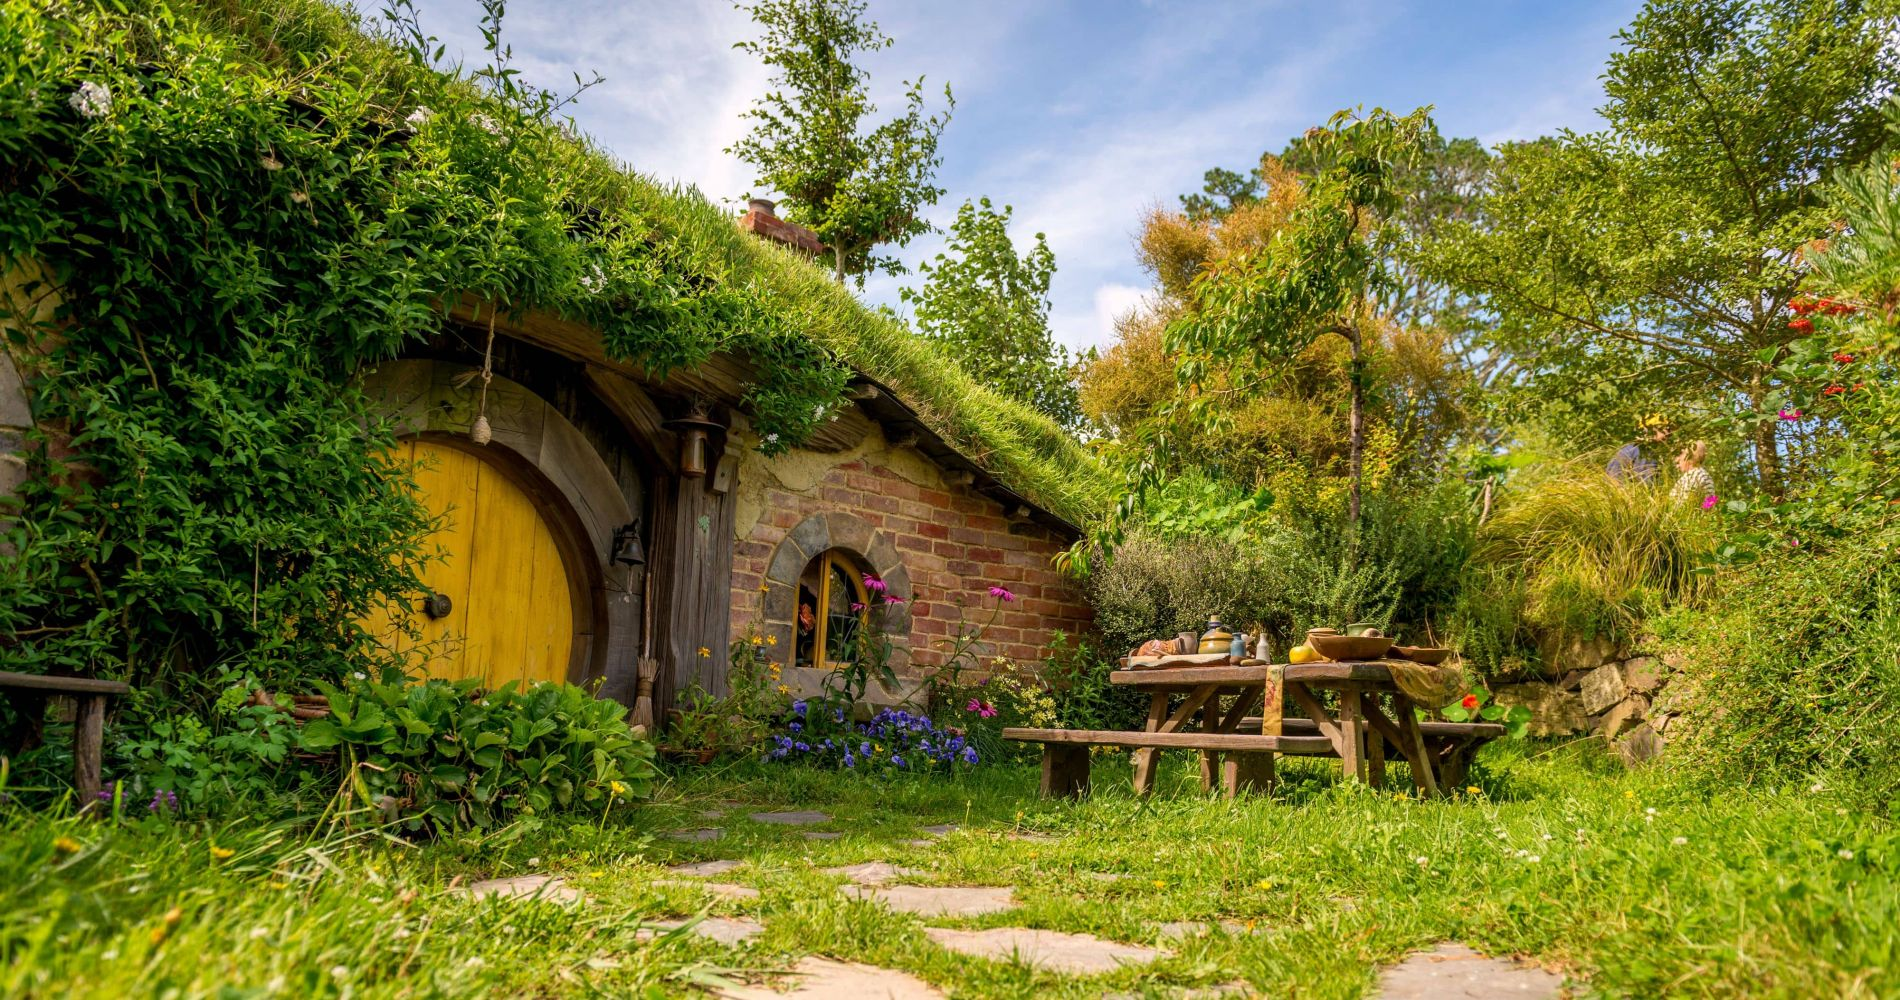 The Hobbit Movie Set Experience for Two from Matamata